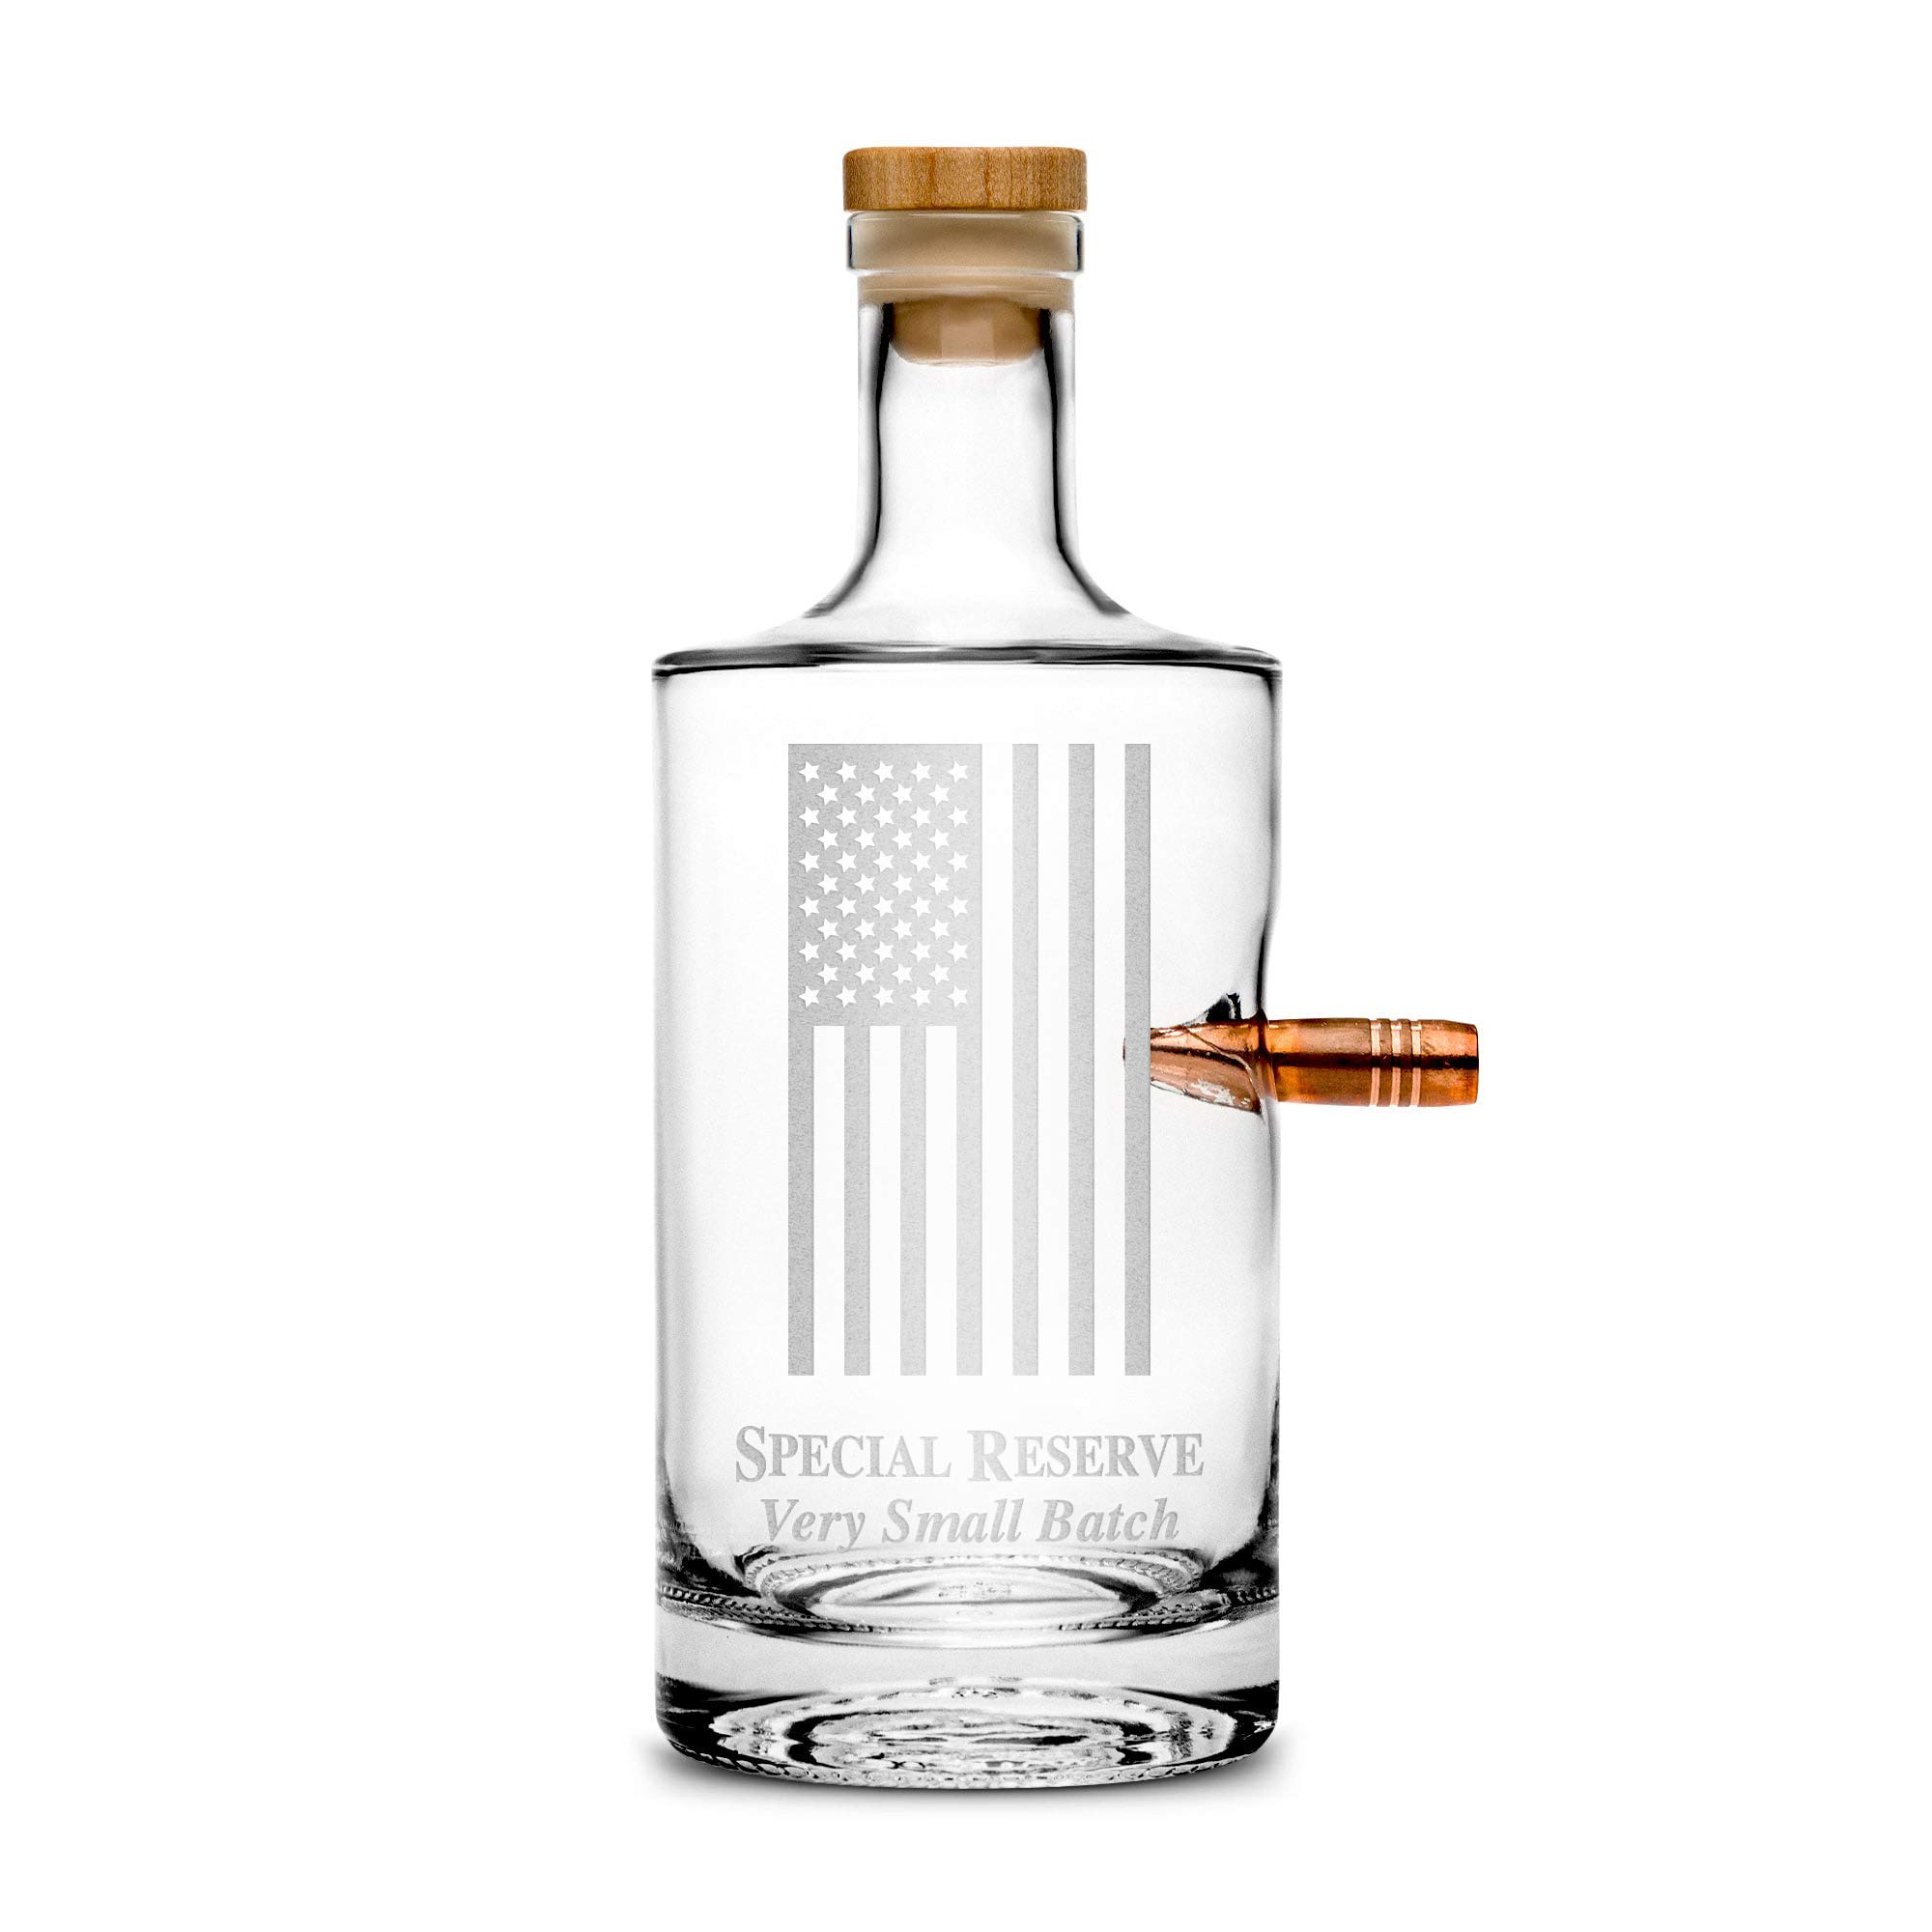 Premium .50 Cal BMG Bullet Bottle, American Flag, Hand Etched 750mL Round Jersey Decanter, Cork Top, Made in USA, Drinking Gifts, Etched with Honor by Integrity Bottles